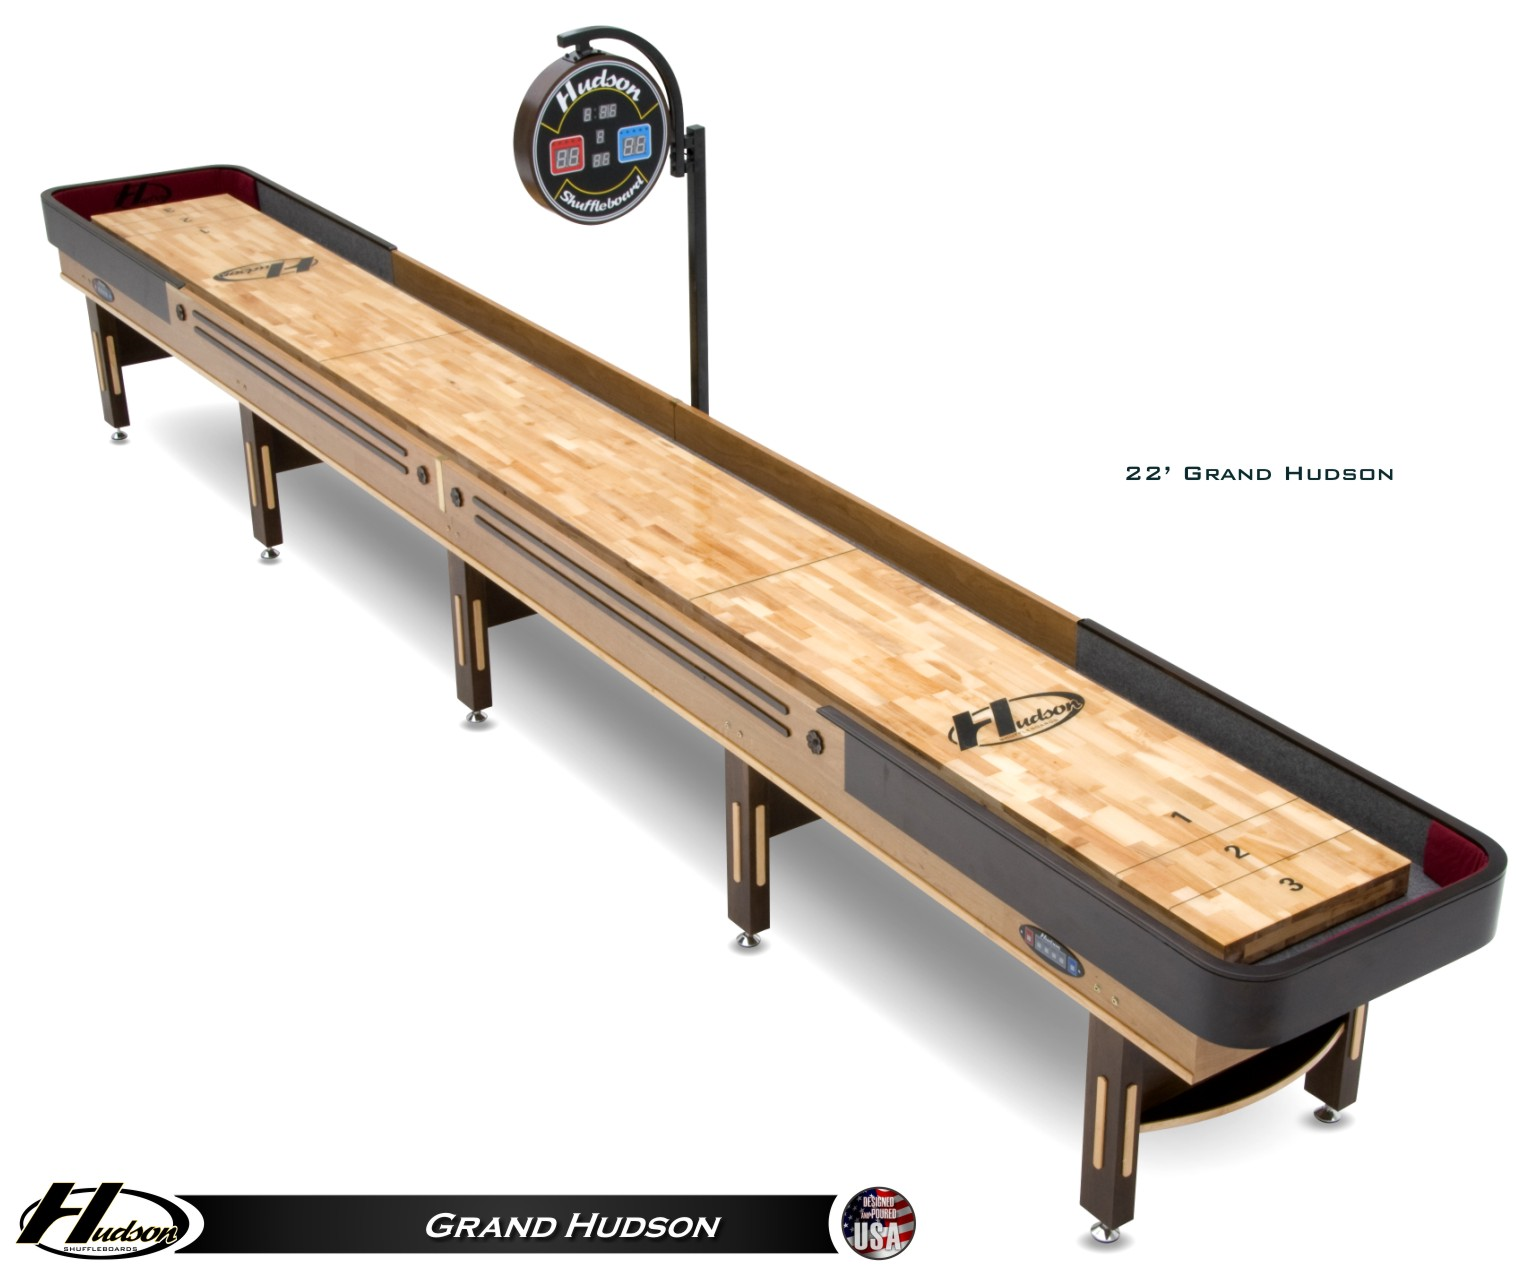 Hudson Grand Hudson 9ft Shuffleboard Table